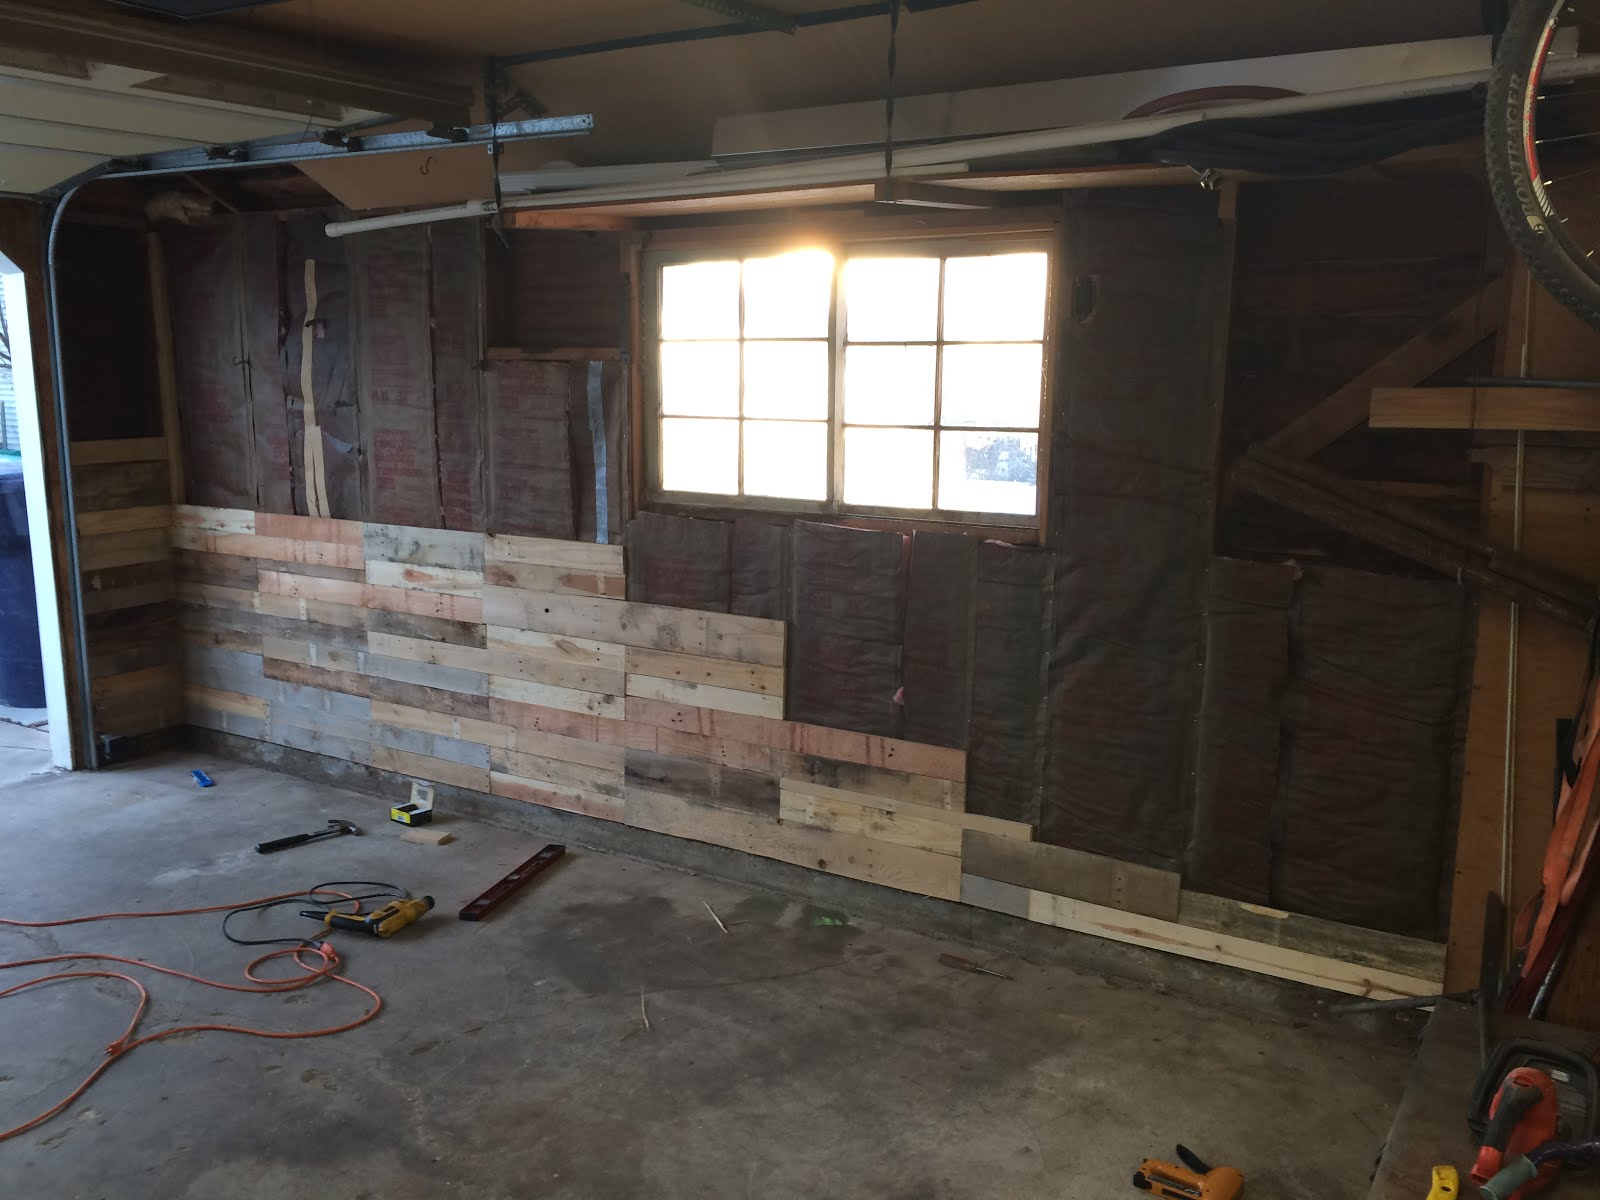 carson 39 s blog garage pallet wood wall build in progress